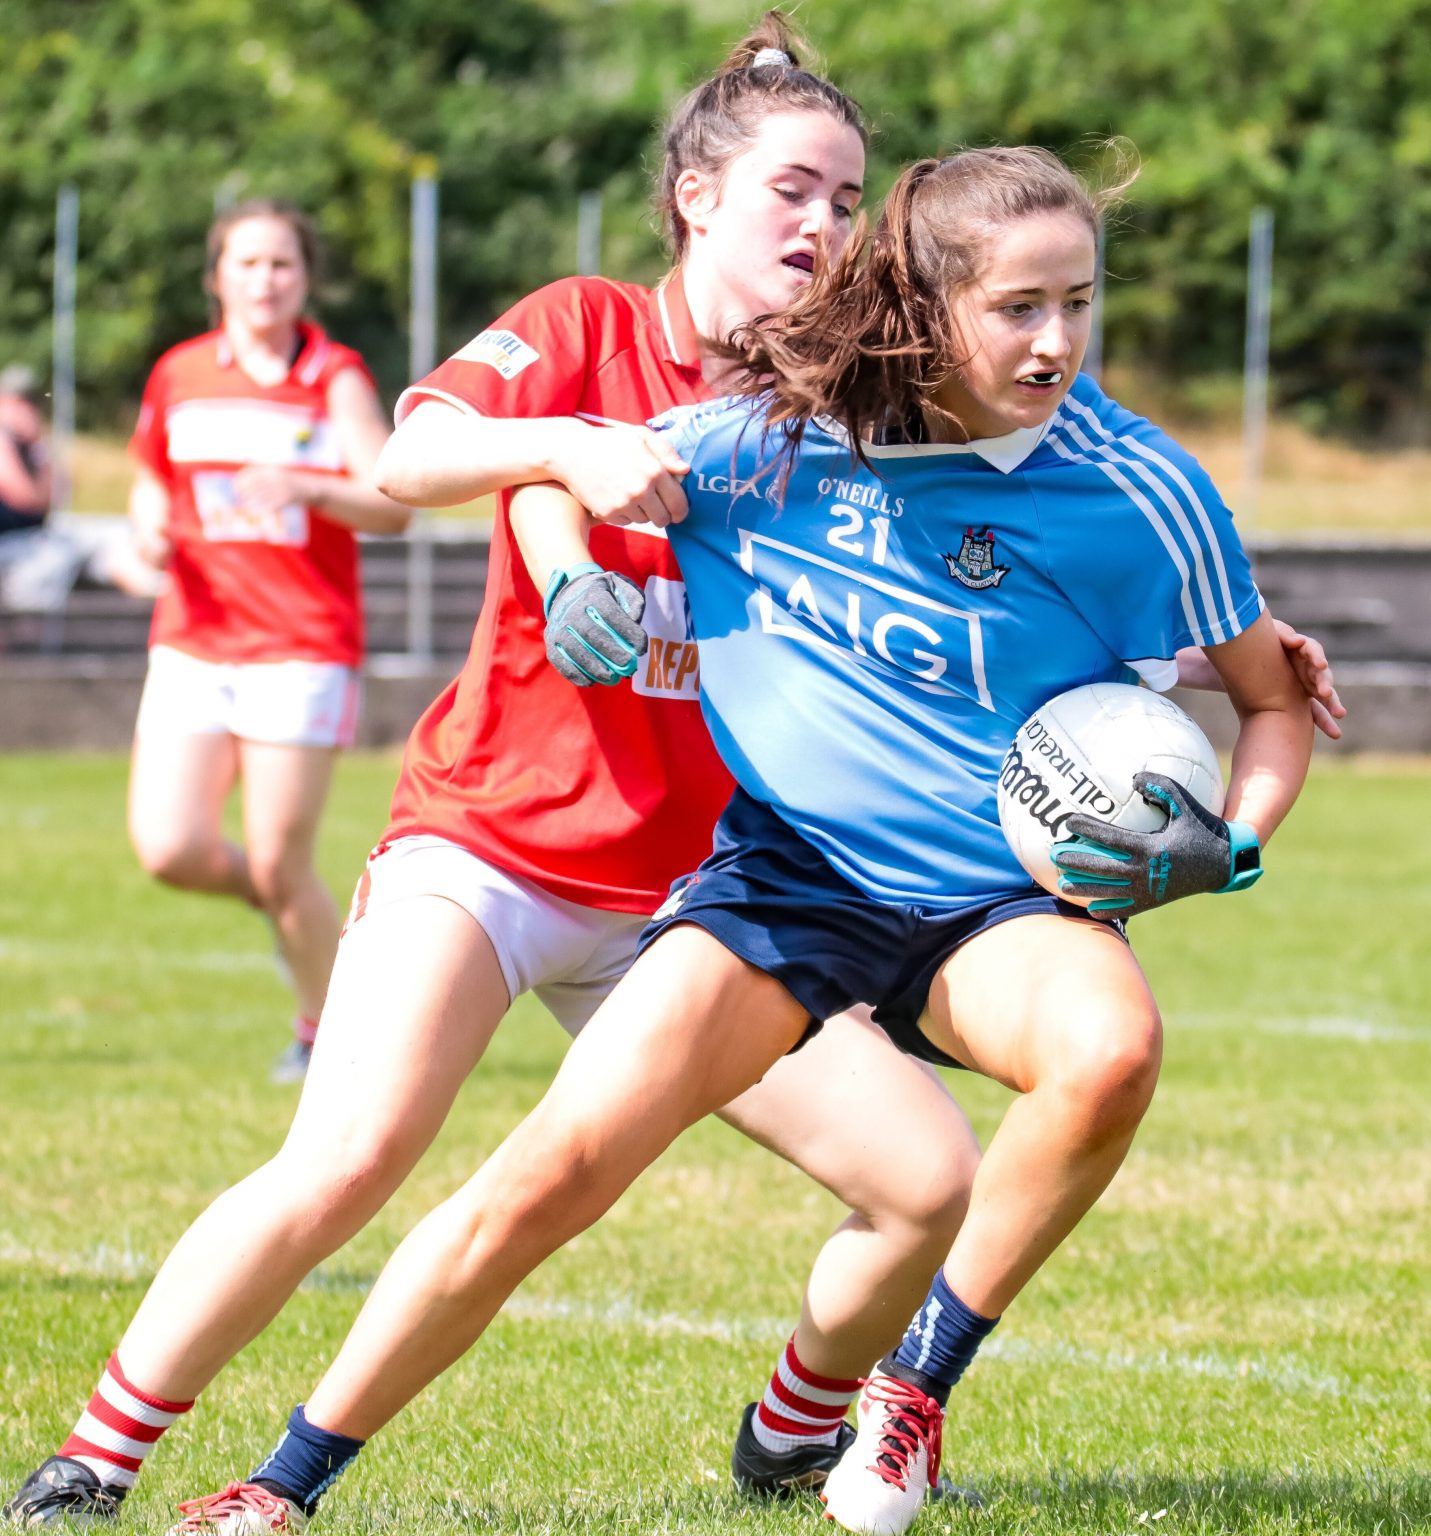 A Dublin Minor Ladies footballer tries to break the tackle from a Cork player in a red Jersey